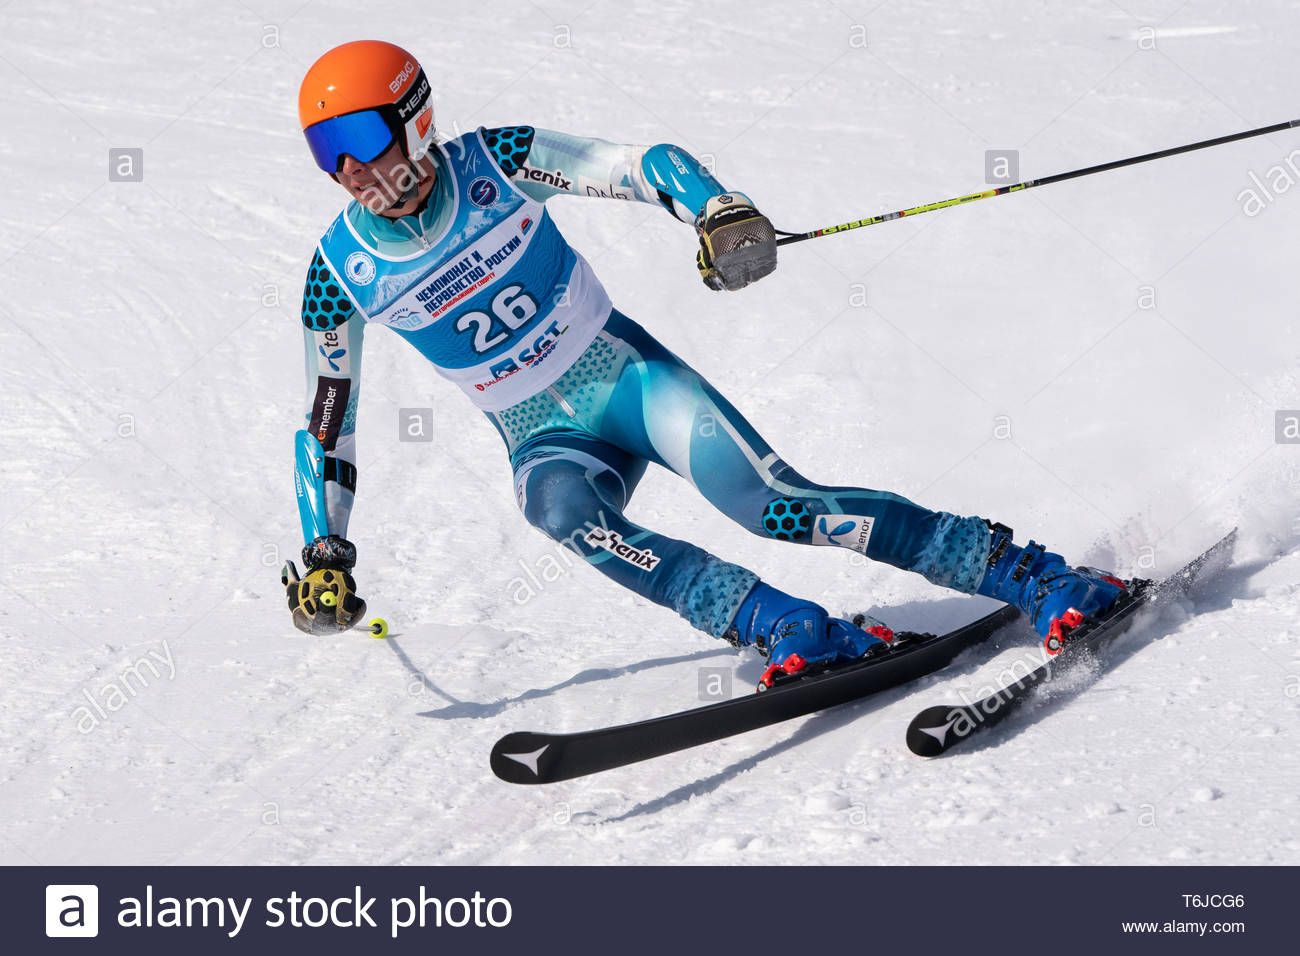 KAMCHATKA PENINSULA, RUSSIA - APR 1, 2019: Russian Alpine Skiing Cup, International Ski Federation (FIS) Championship, giant slalom. Mountain skier Lo - Stock Image